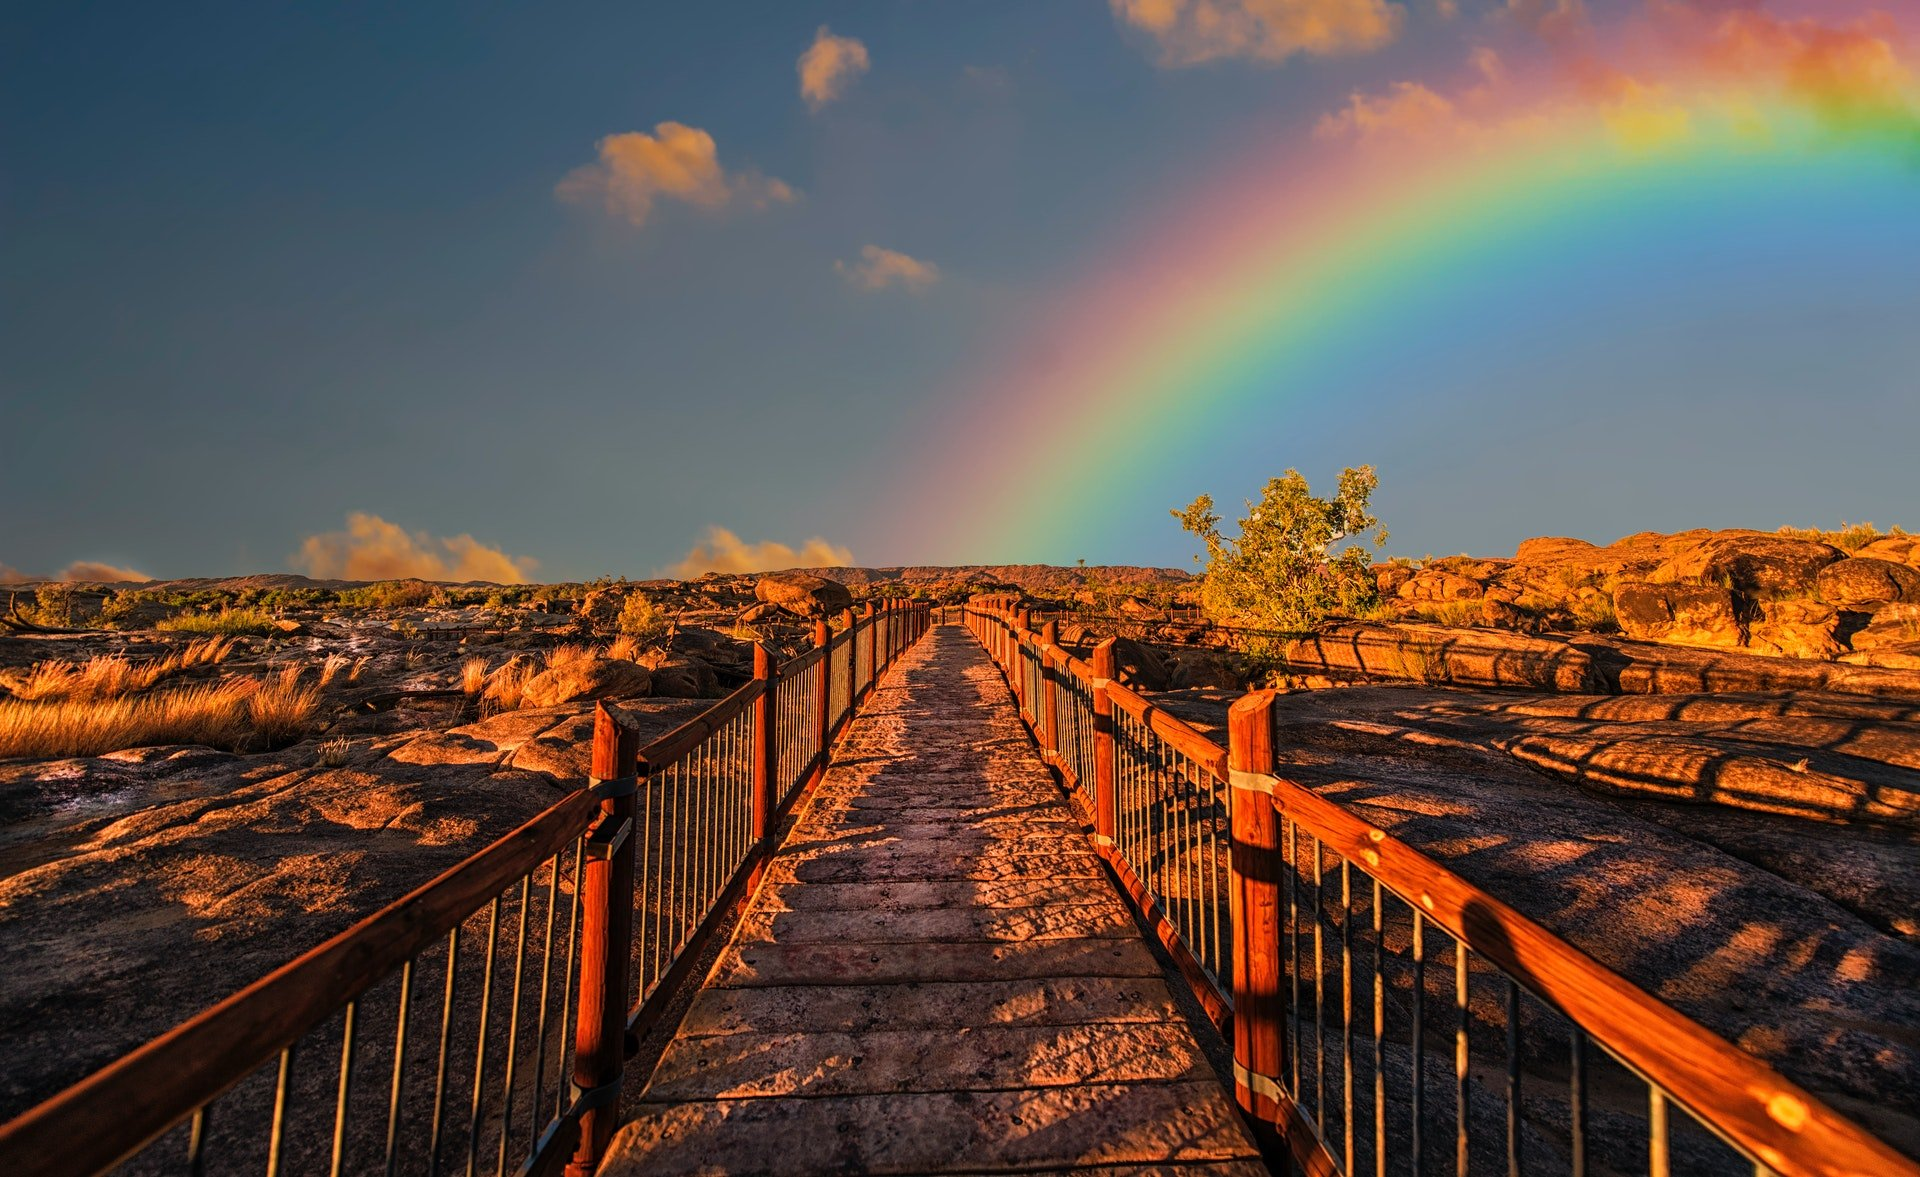 boardwalk with rainbow in the distance